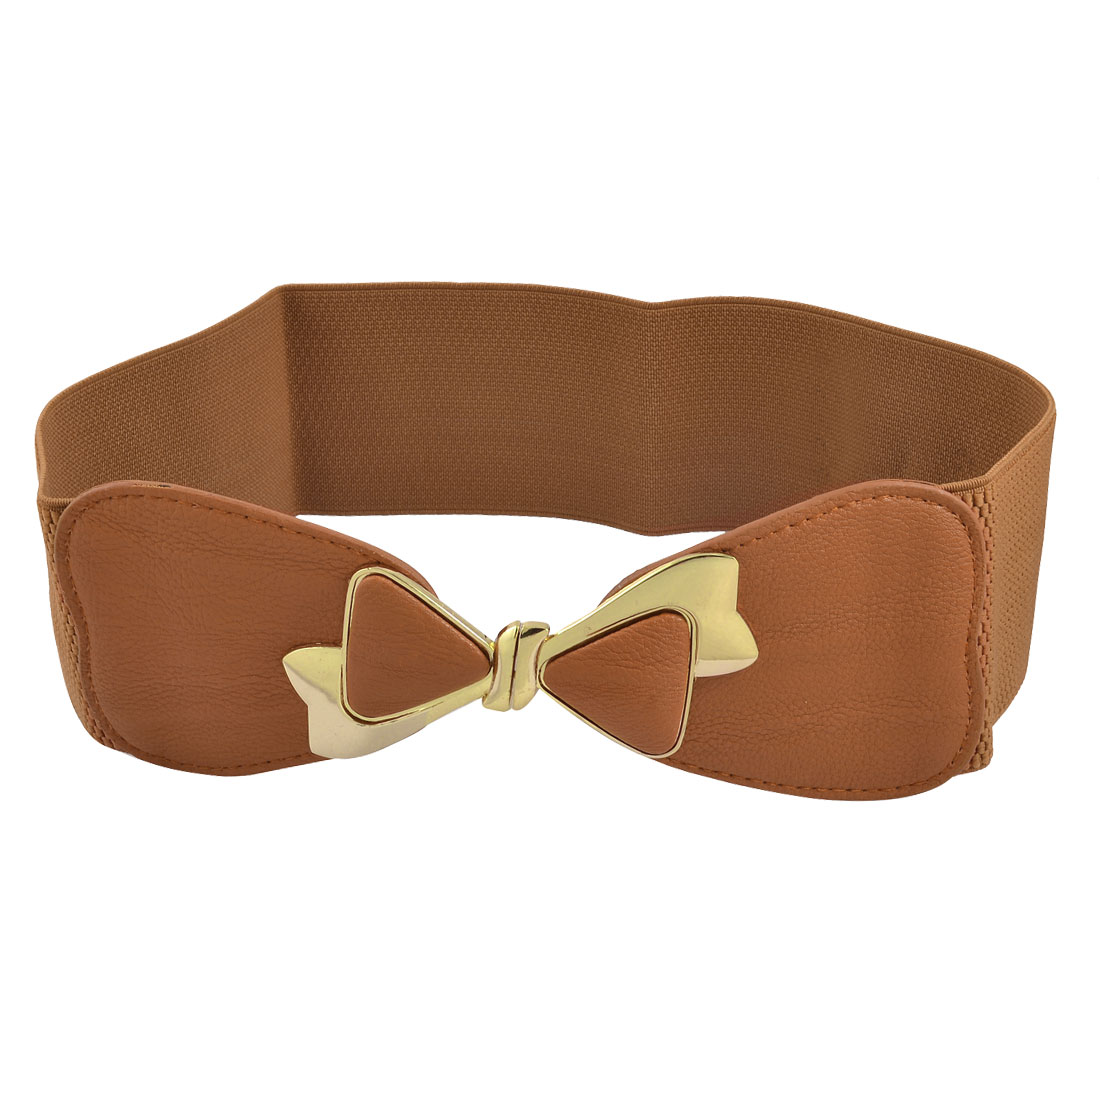 Woman Gold Tone Bowknot Buckle Brown Elastic Cinch Belt